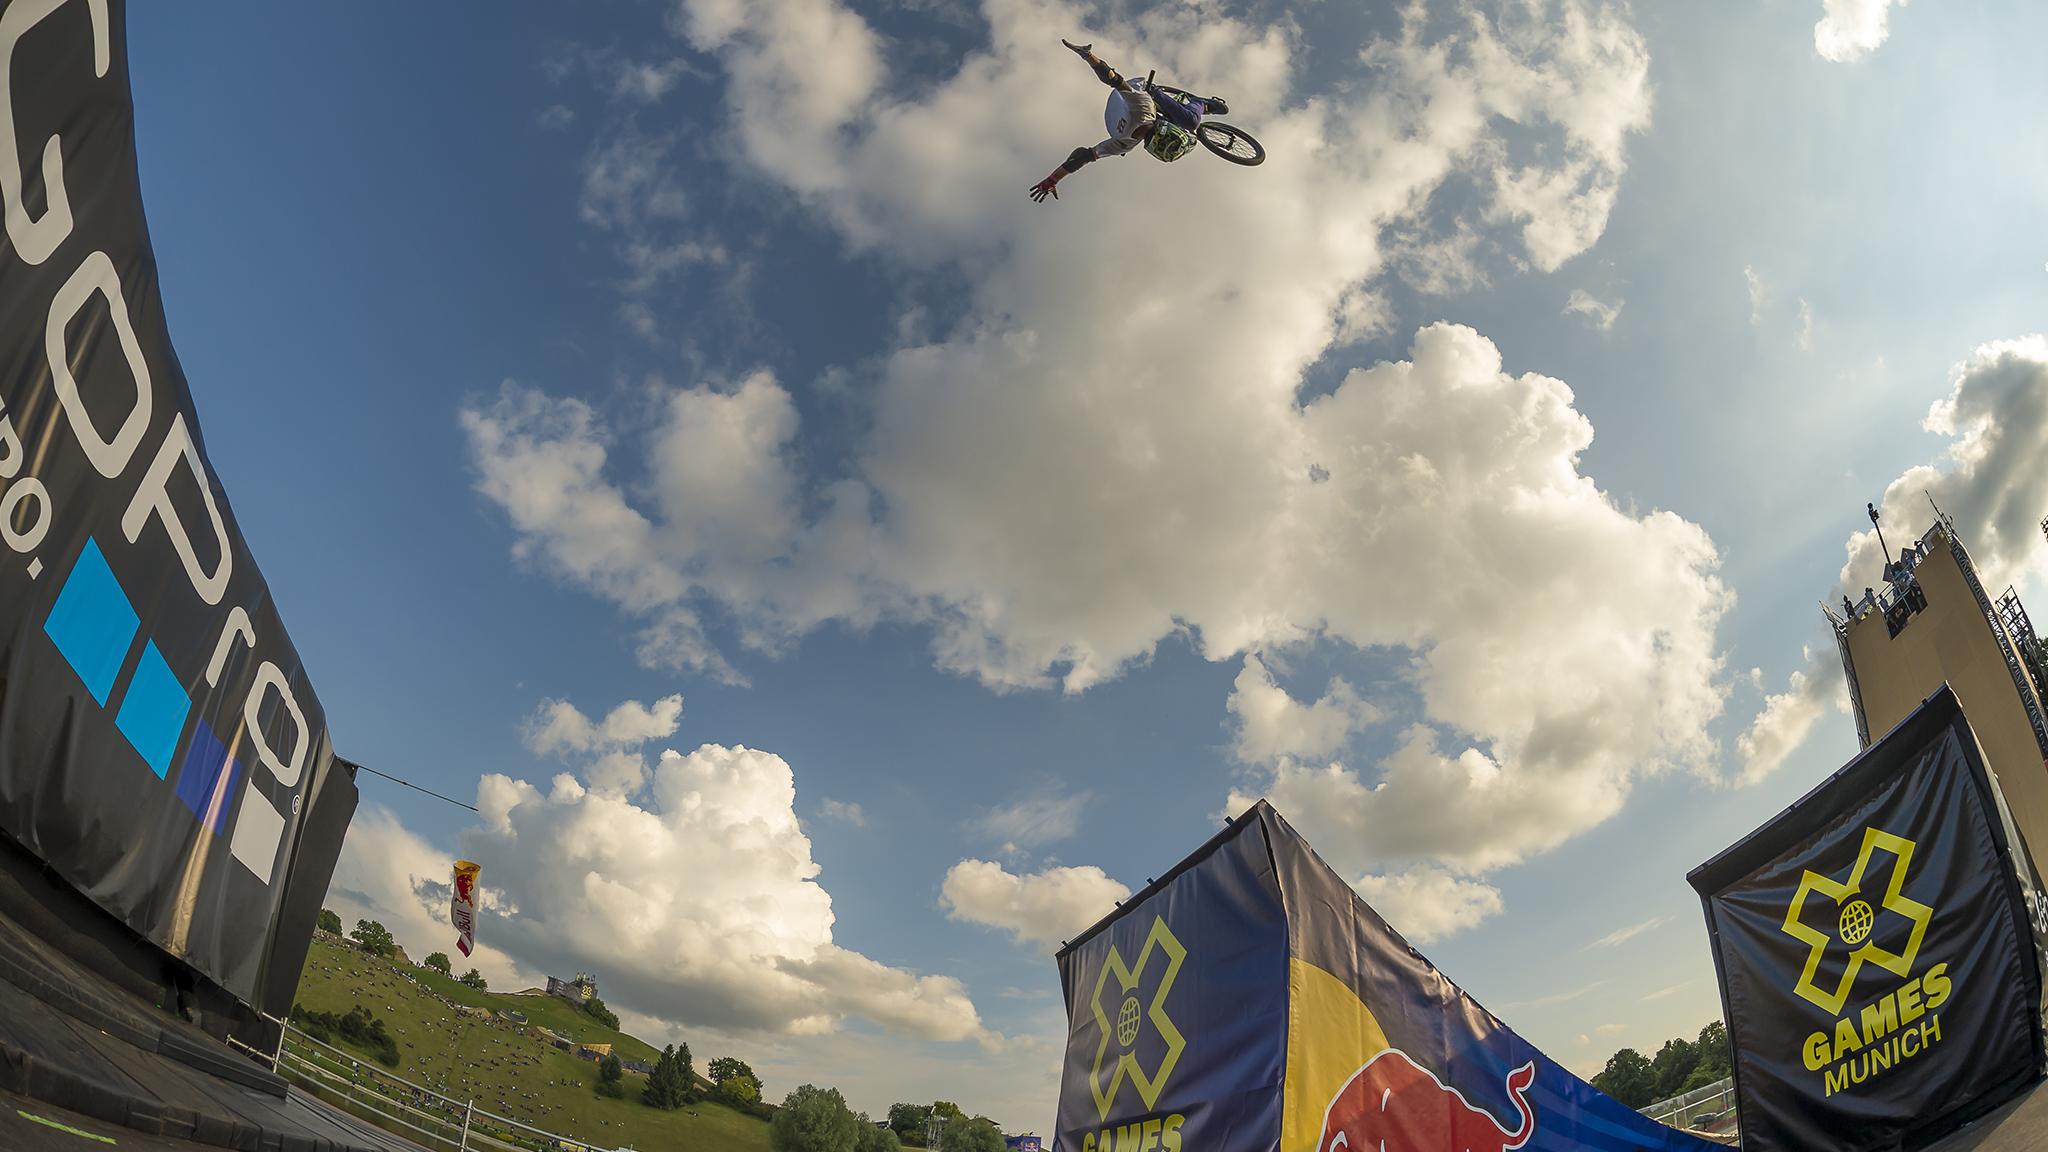 Andy Buckworth's no-handed double front flip